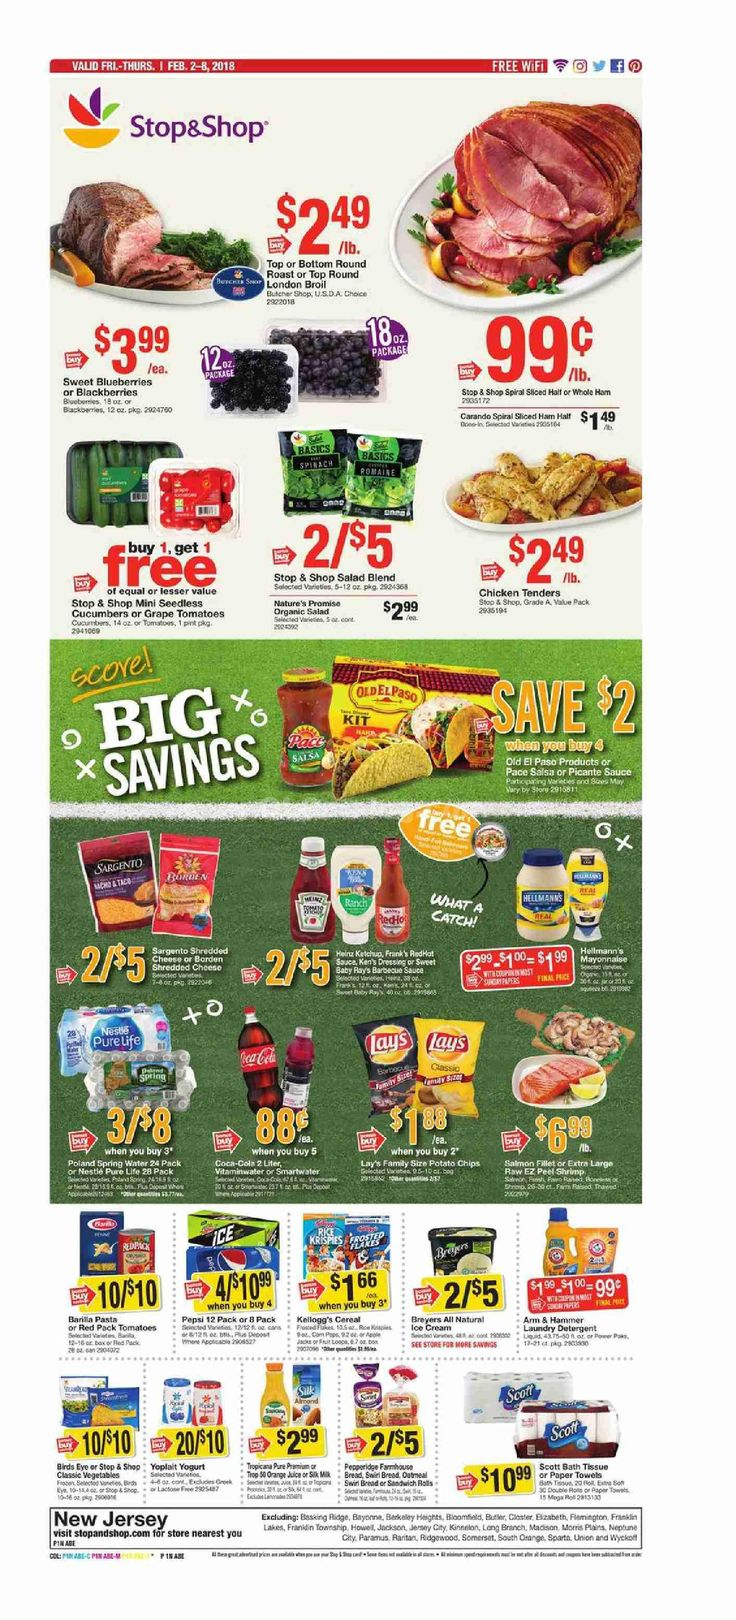 Stop and Shop Circular February 2 - 8, 2018 - http://www.olcatalog.com/grocery/stop-and-shop-circular.html